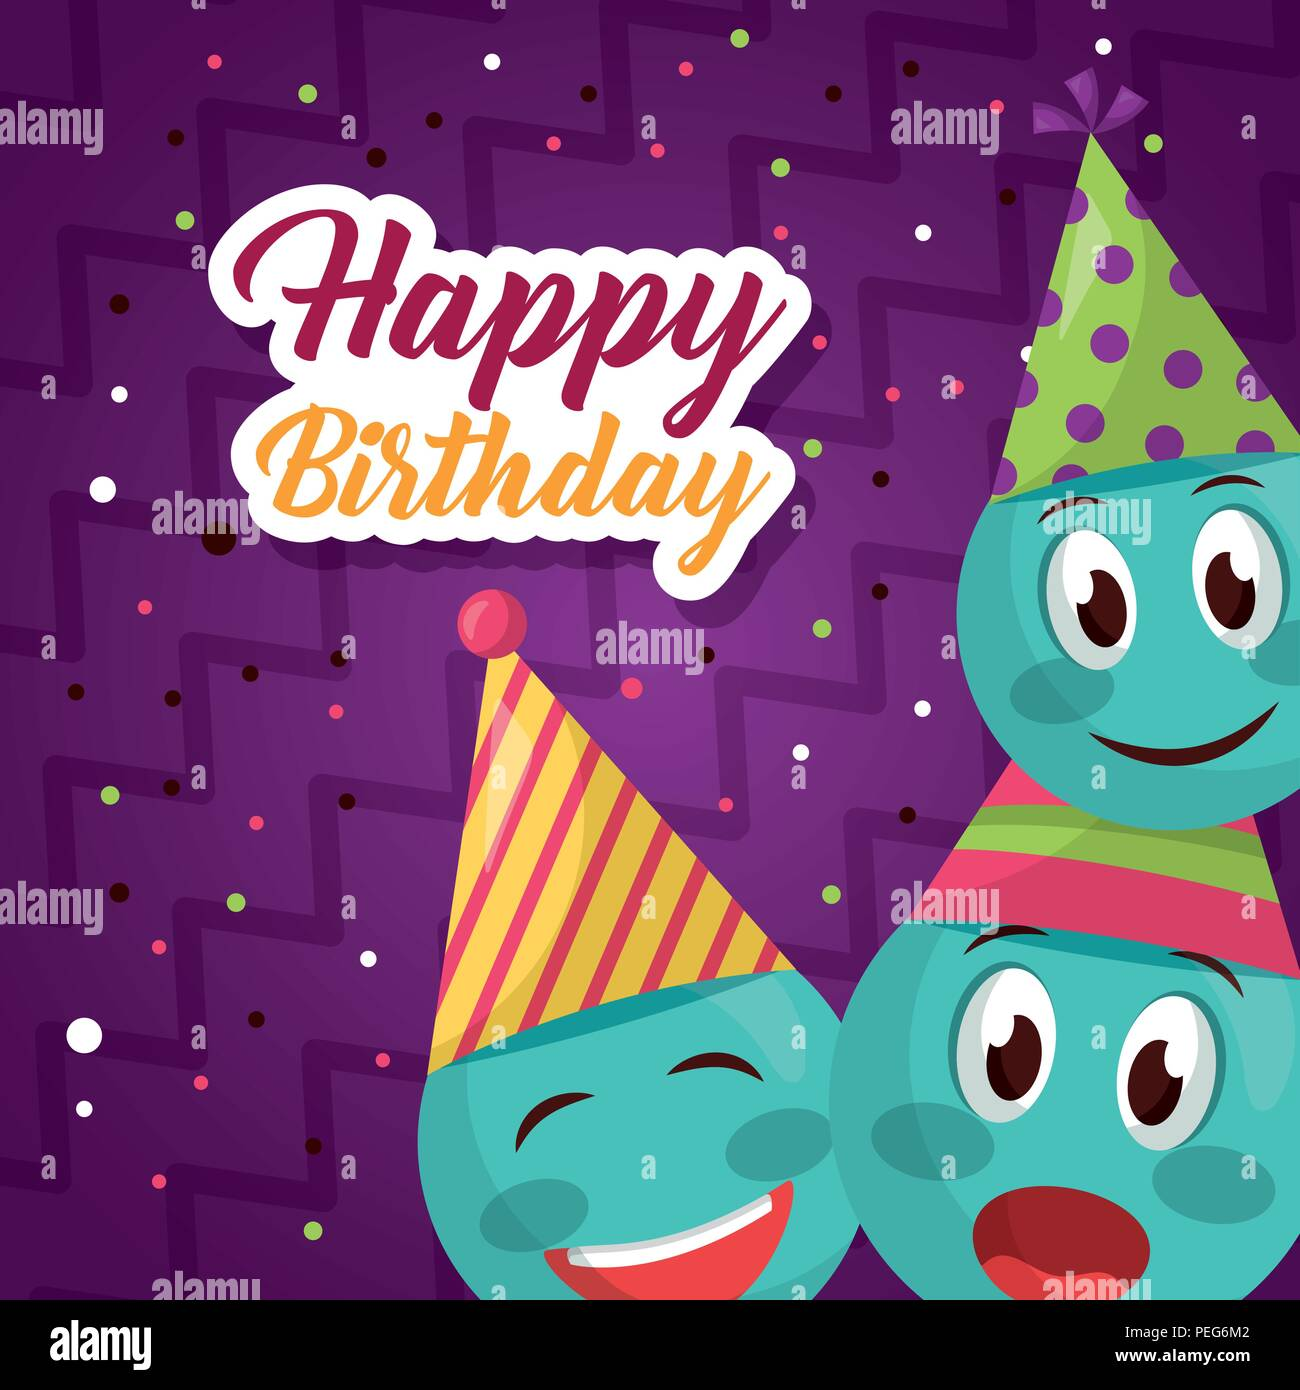 happy birthday card - Stock Image